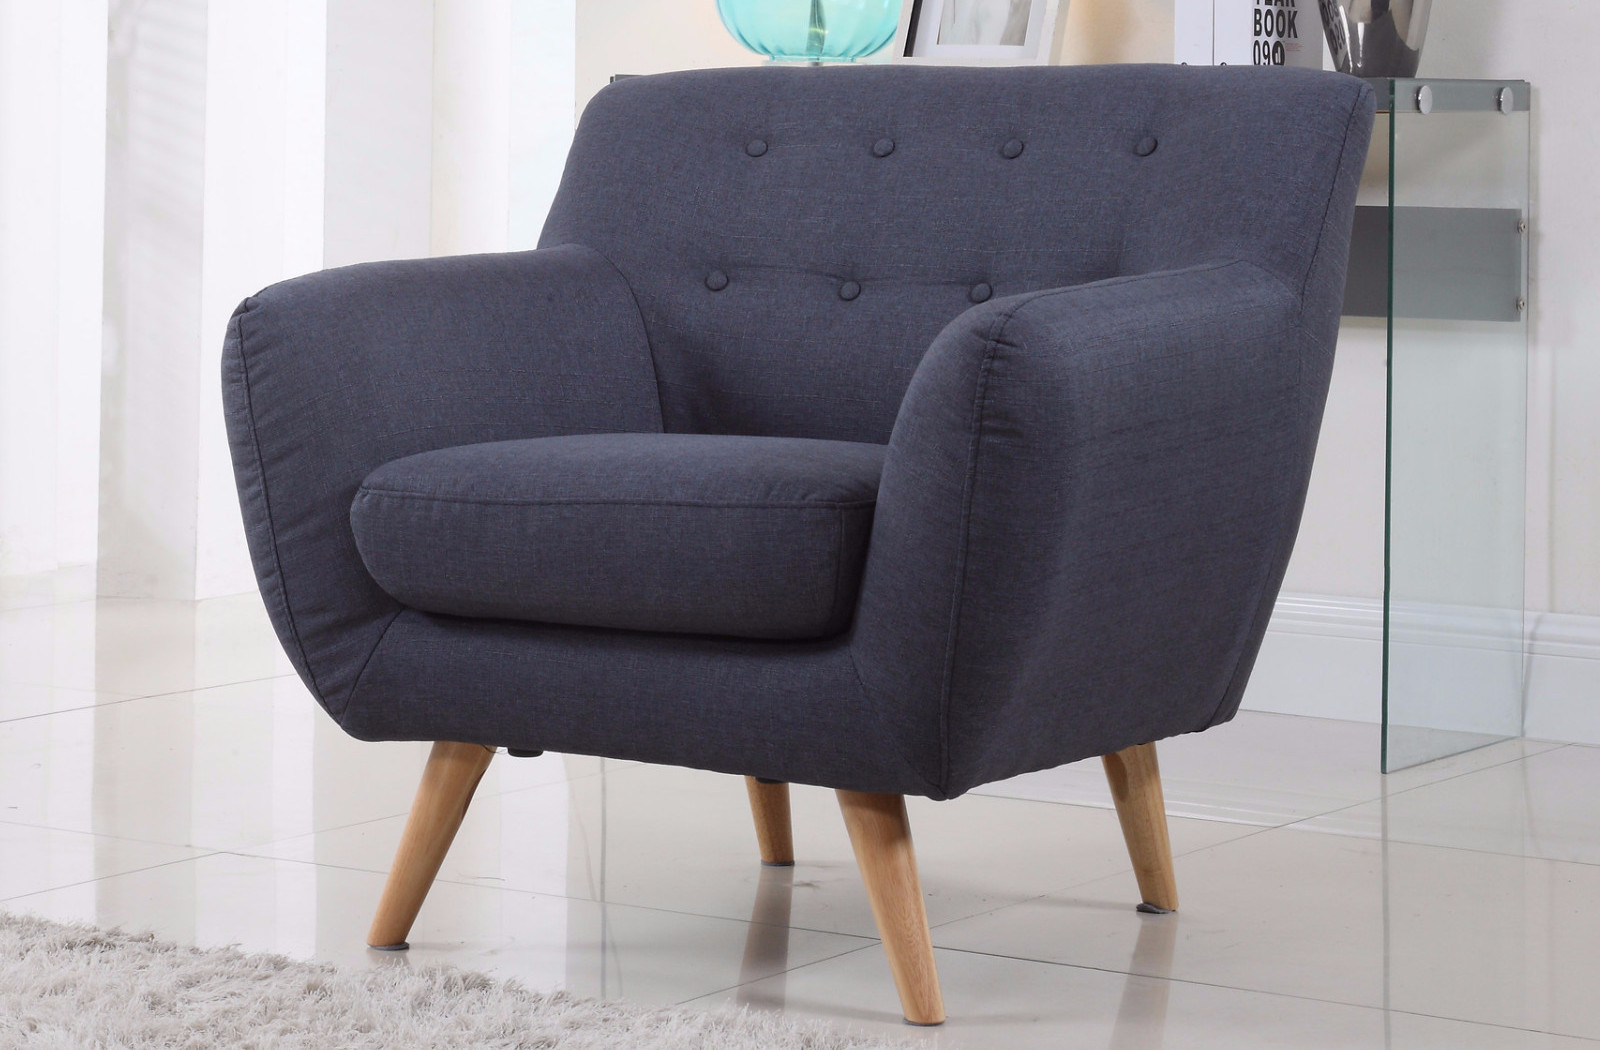 Wingback Armchair | Navy Blue Accent Chairs | Tufted Chair